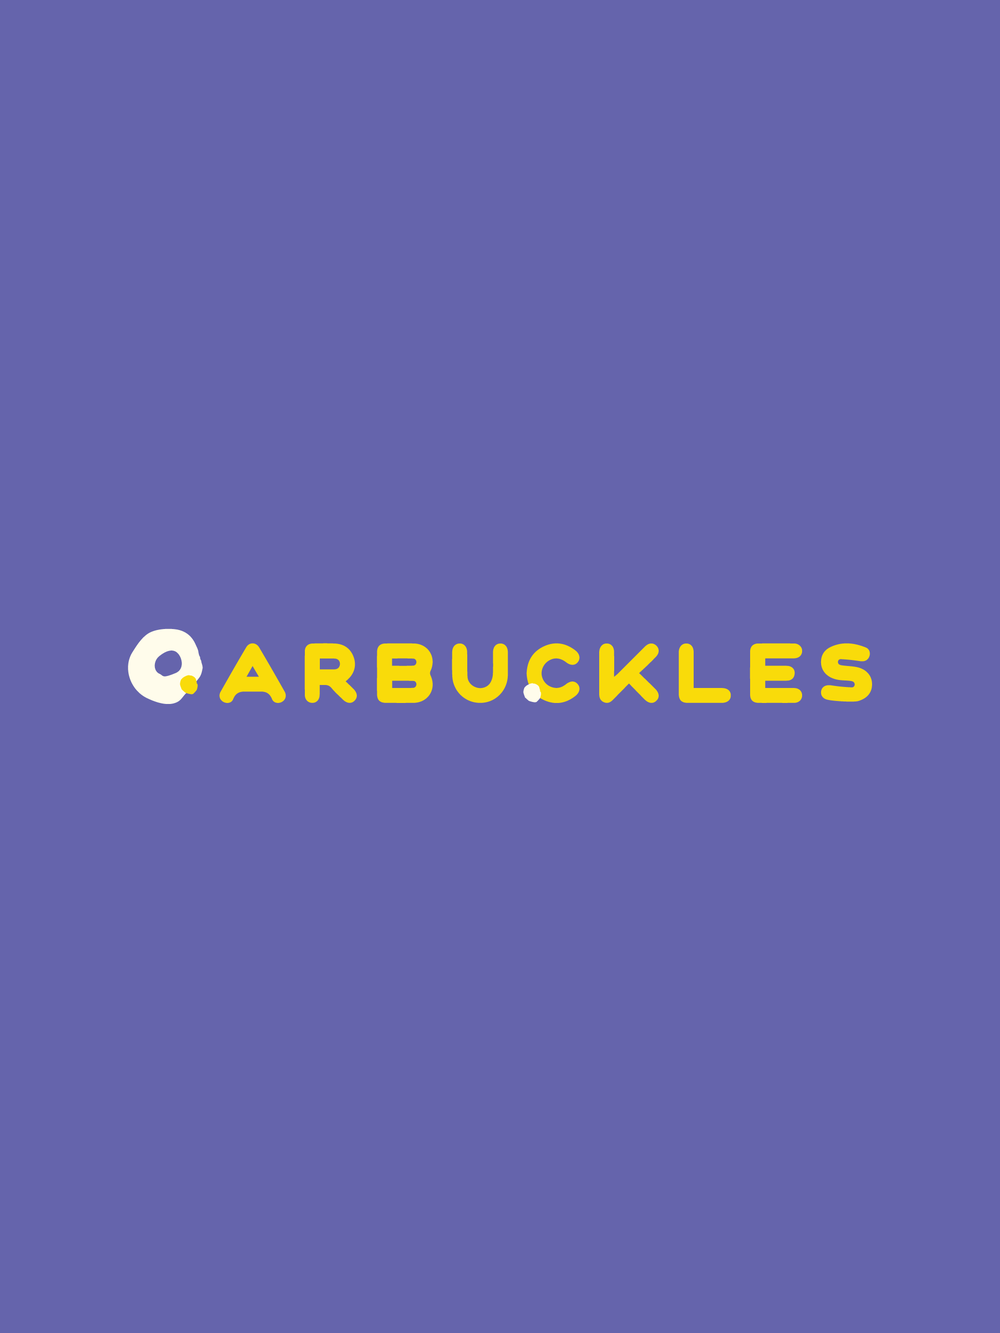 Arbuckles_CaseStudy-03.png